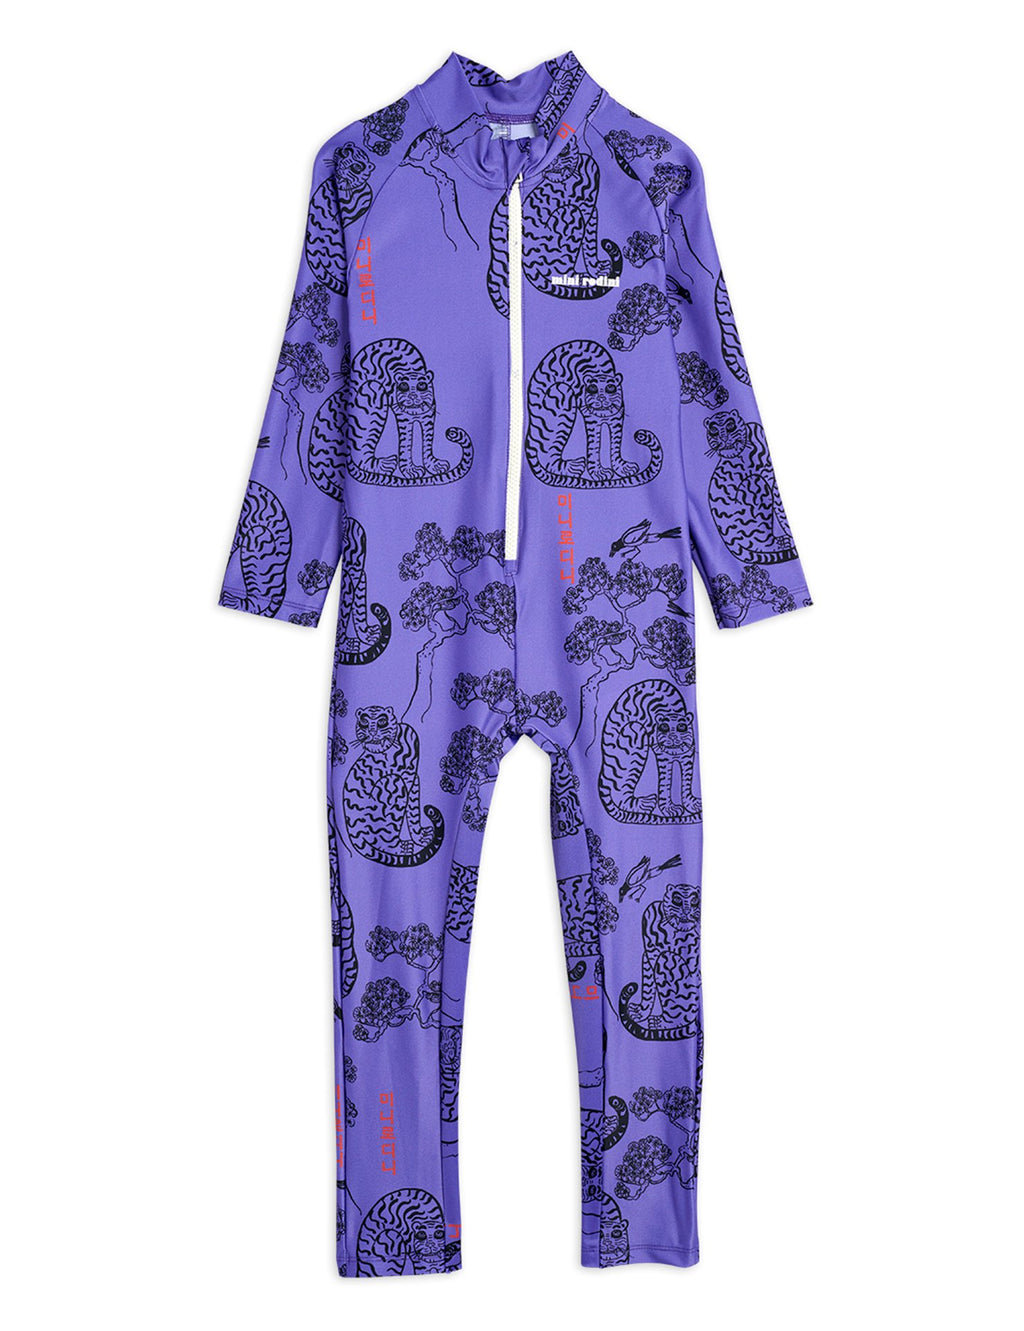 MINI RODINI / Tigers uv suit